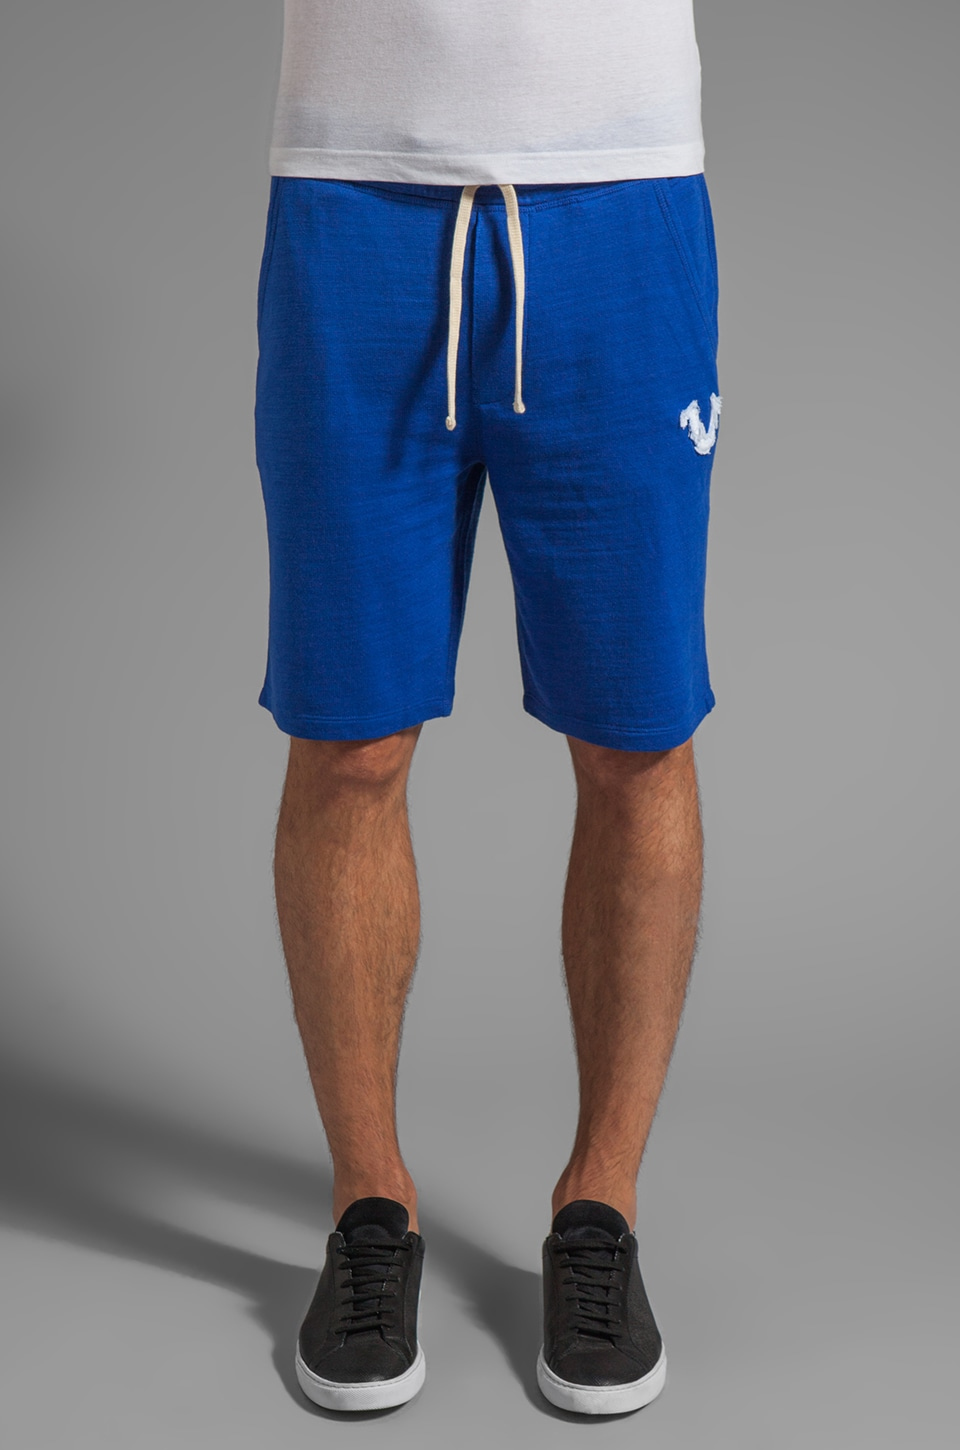 True Religion Echo Park Jog Short in Royal Blue